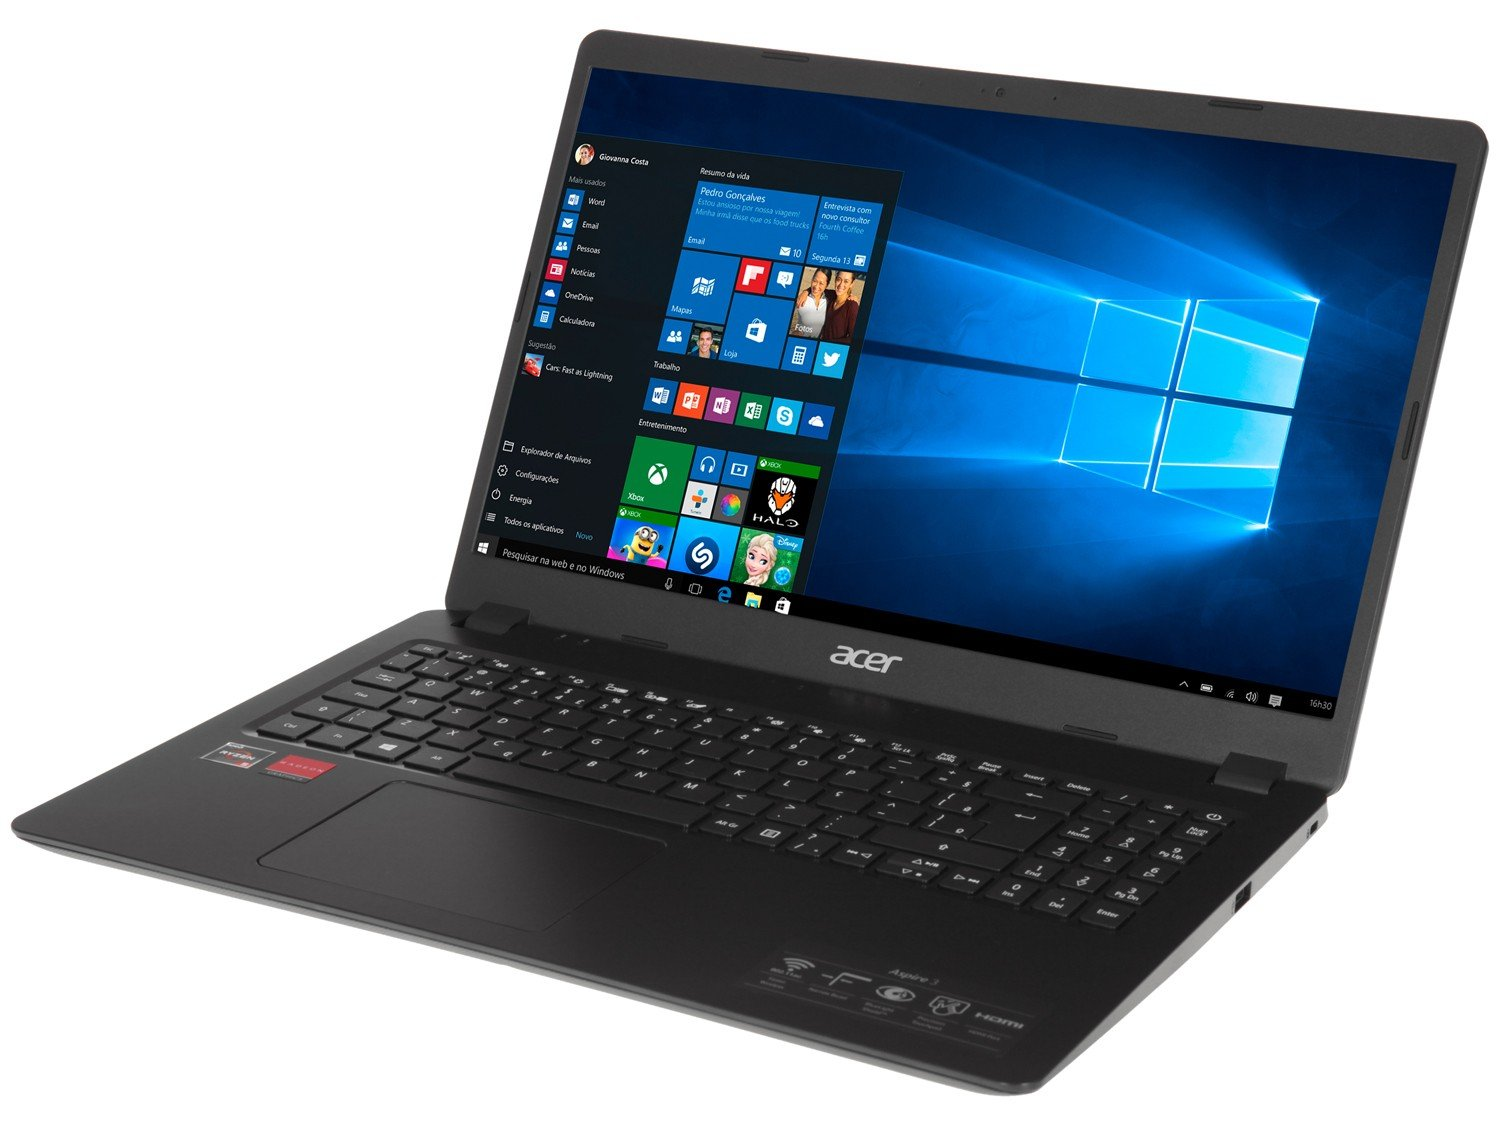 "Notebook Acer Aspire 3 A315-42G-R8LU AMD Ryzen 5 - 8GB 256GB SSD 15,6"" Placa Vídeo 2GB Windows 10 - Bivolt - 2"